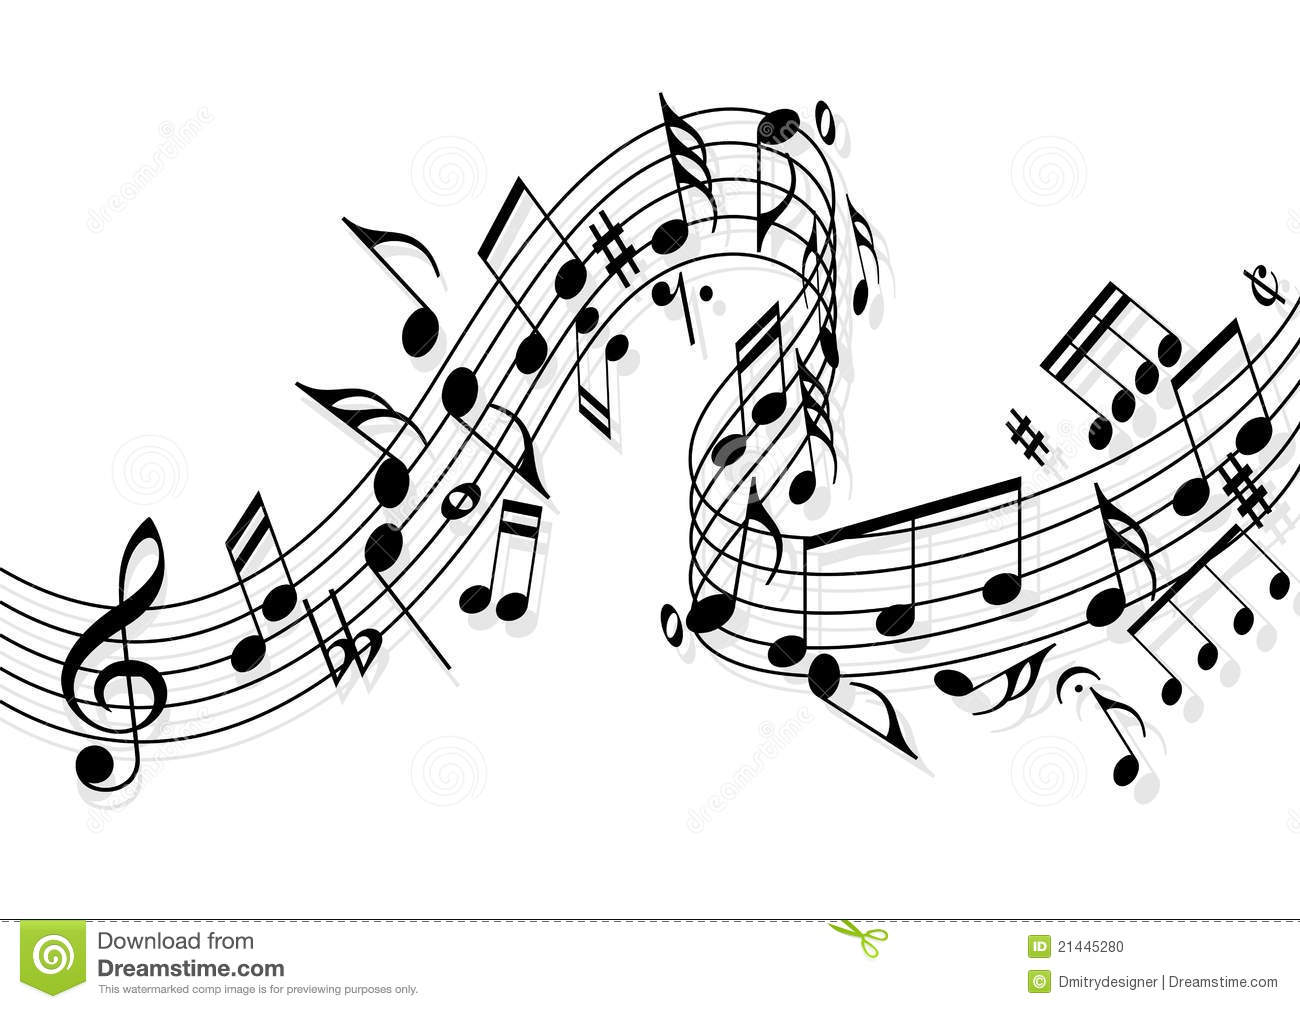 Music notes stock vector illustration of harmony for Note musicali dwg